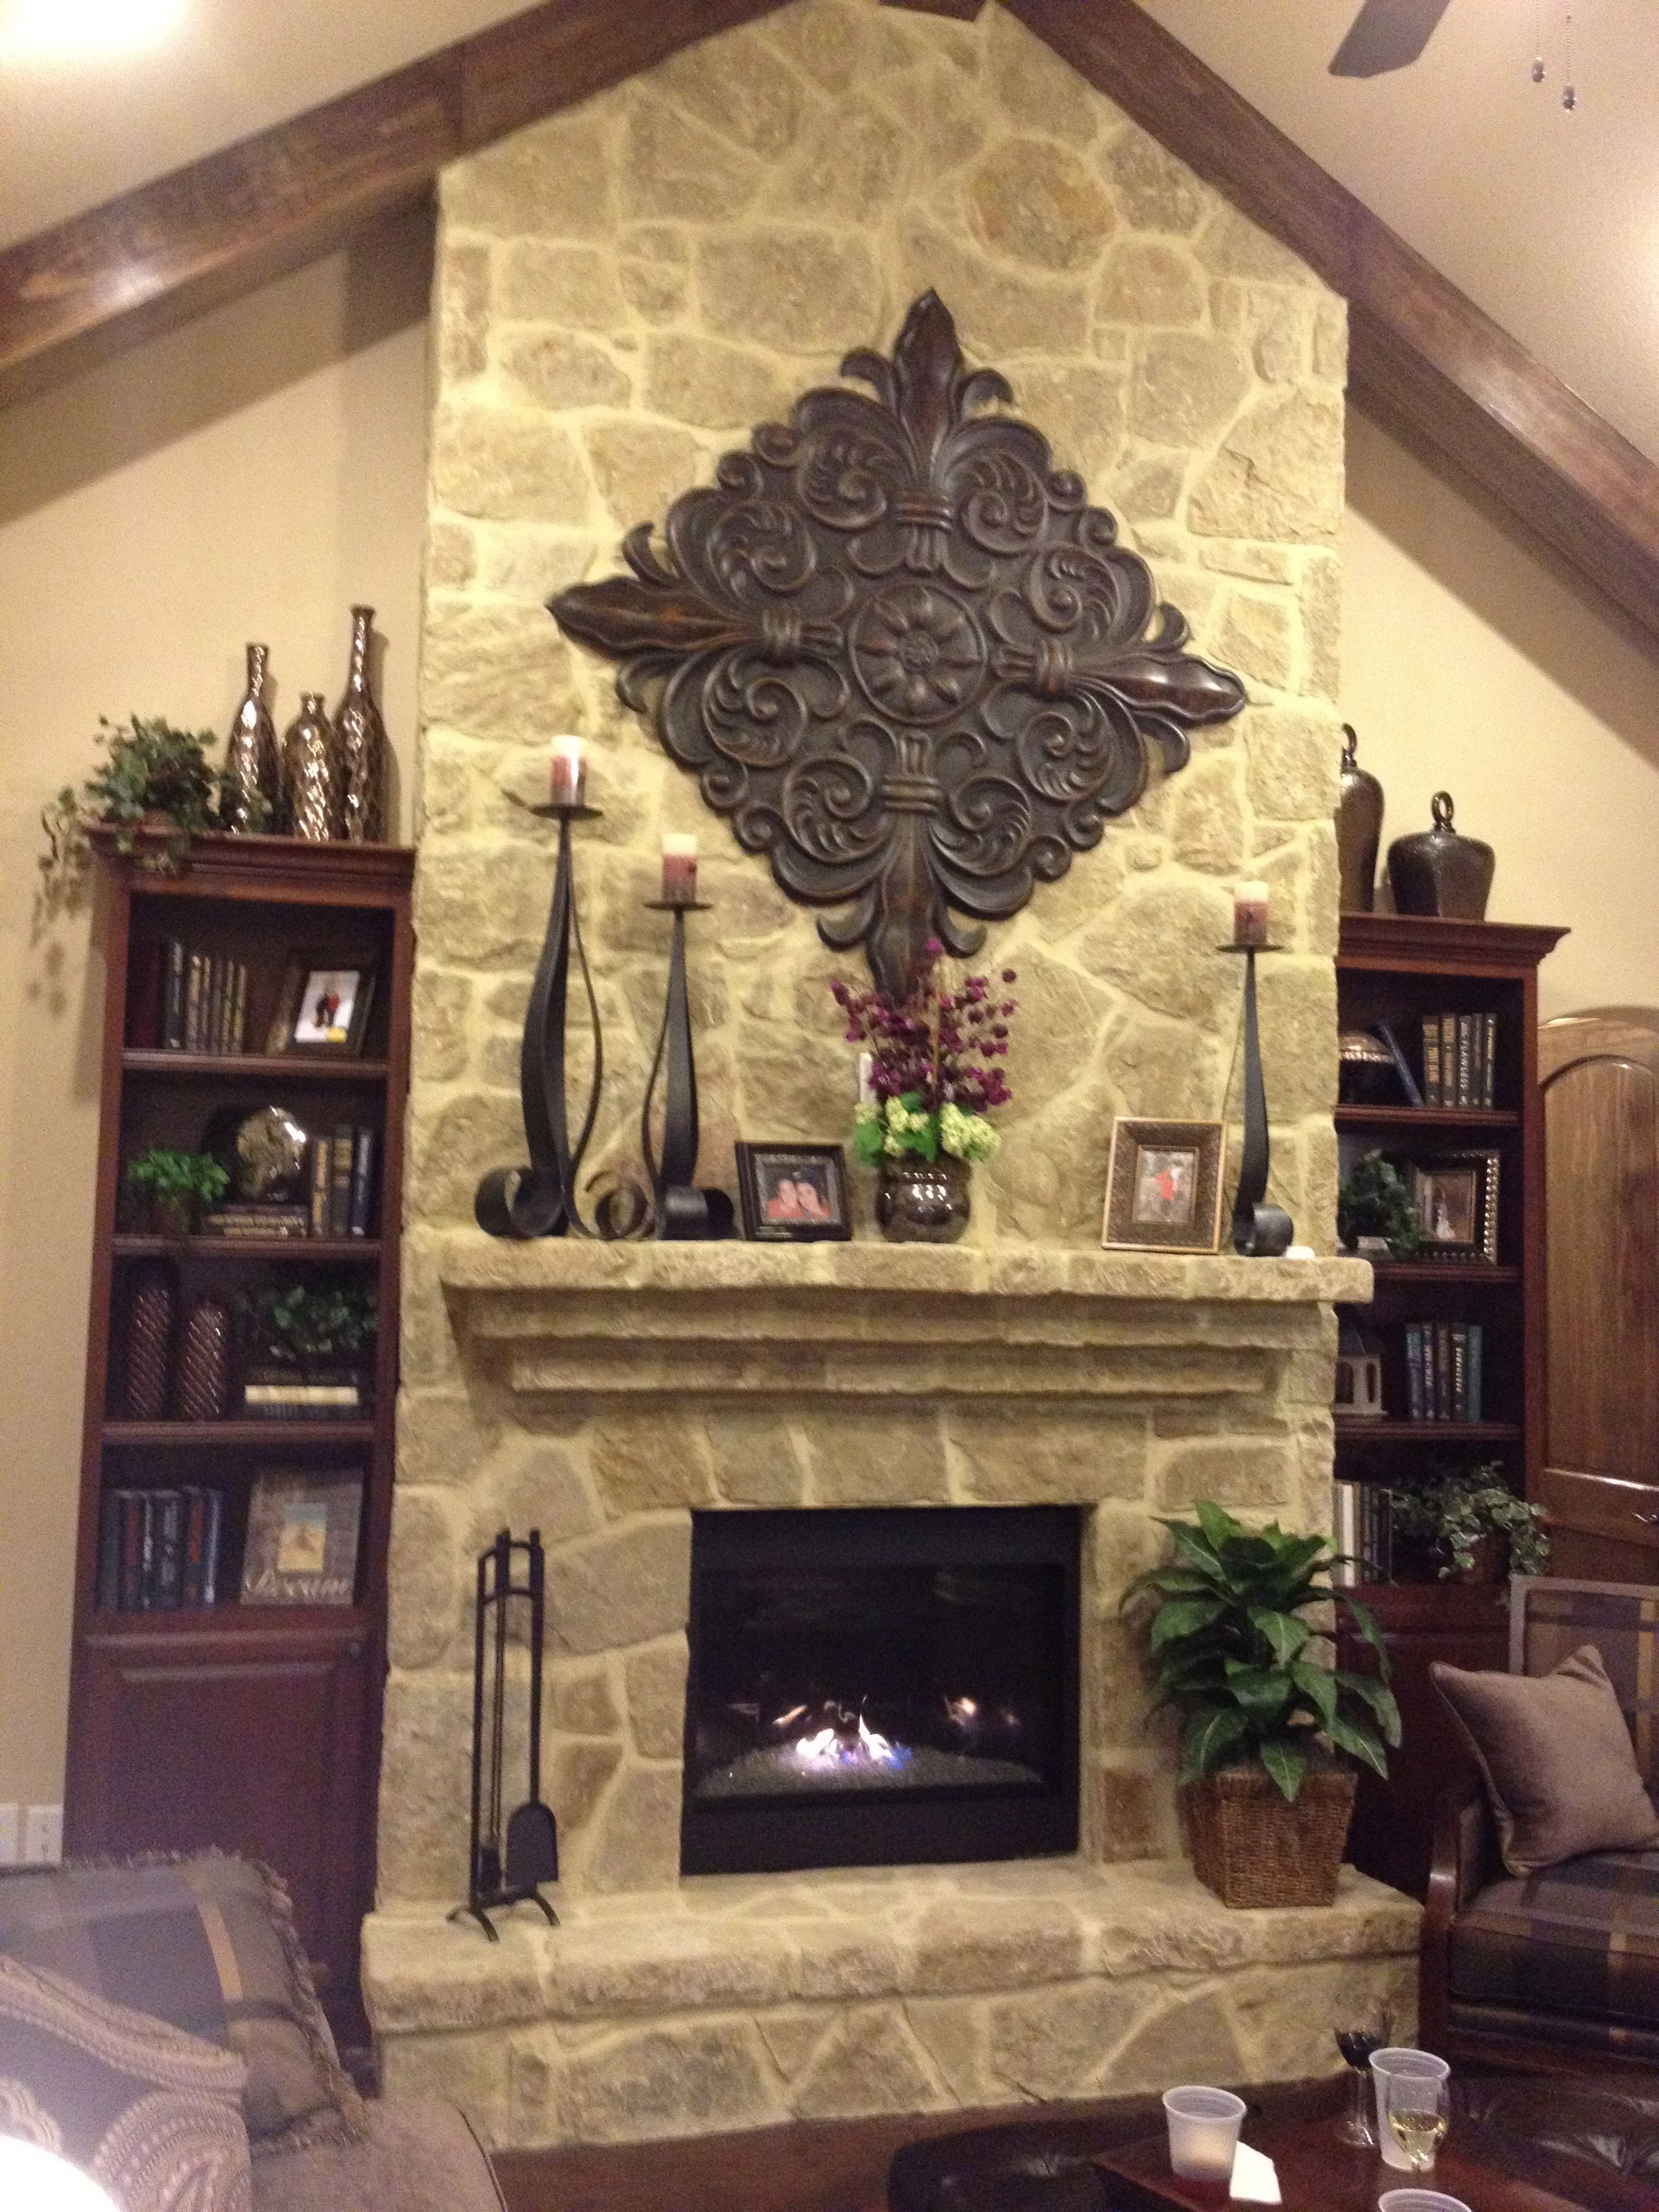 How To Decorate A Rustic Fireplace Mantel Decor Indoor ...